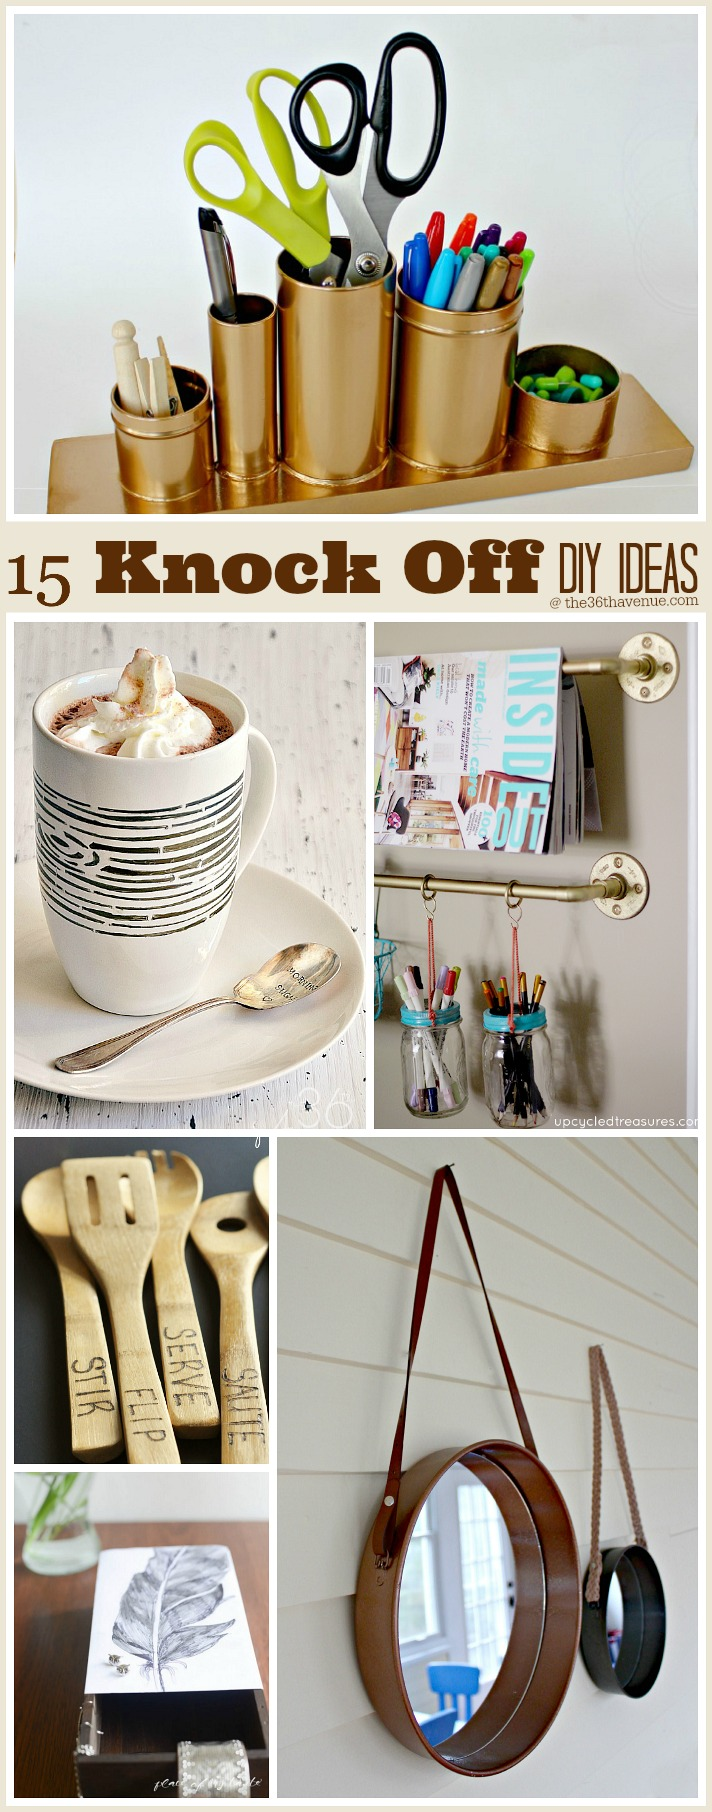 15 DIY Projects ~ Knock Off Edition | The 36th AVENUE